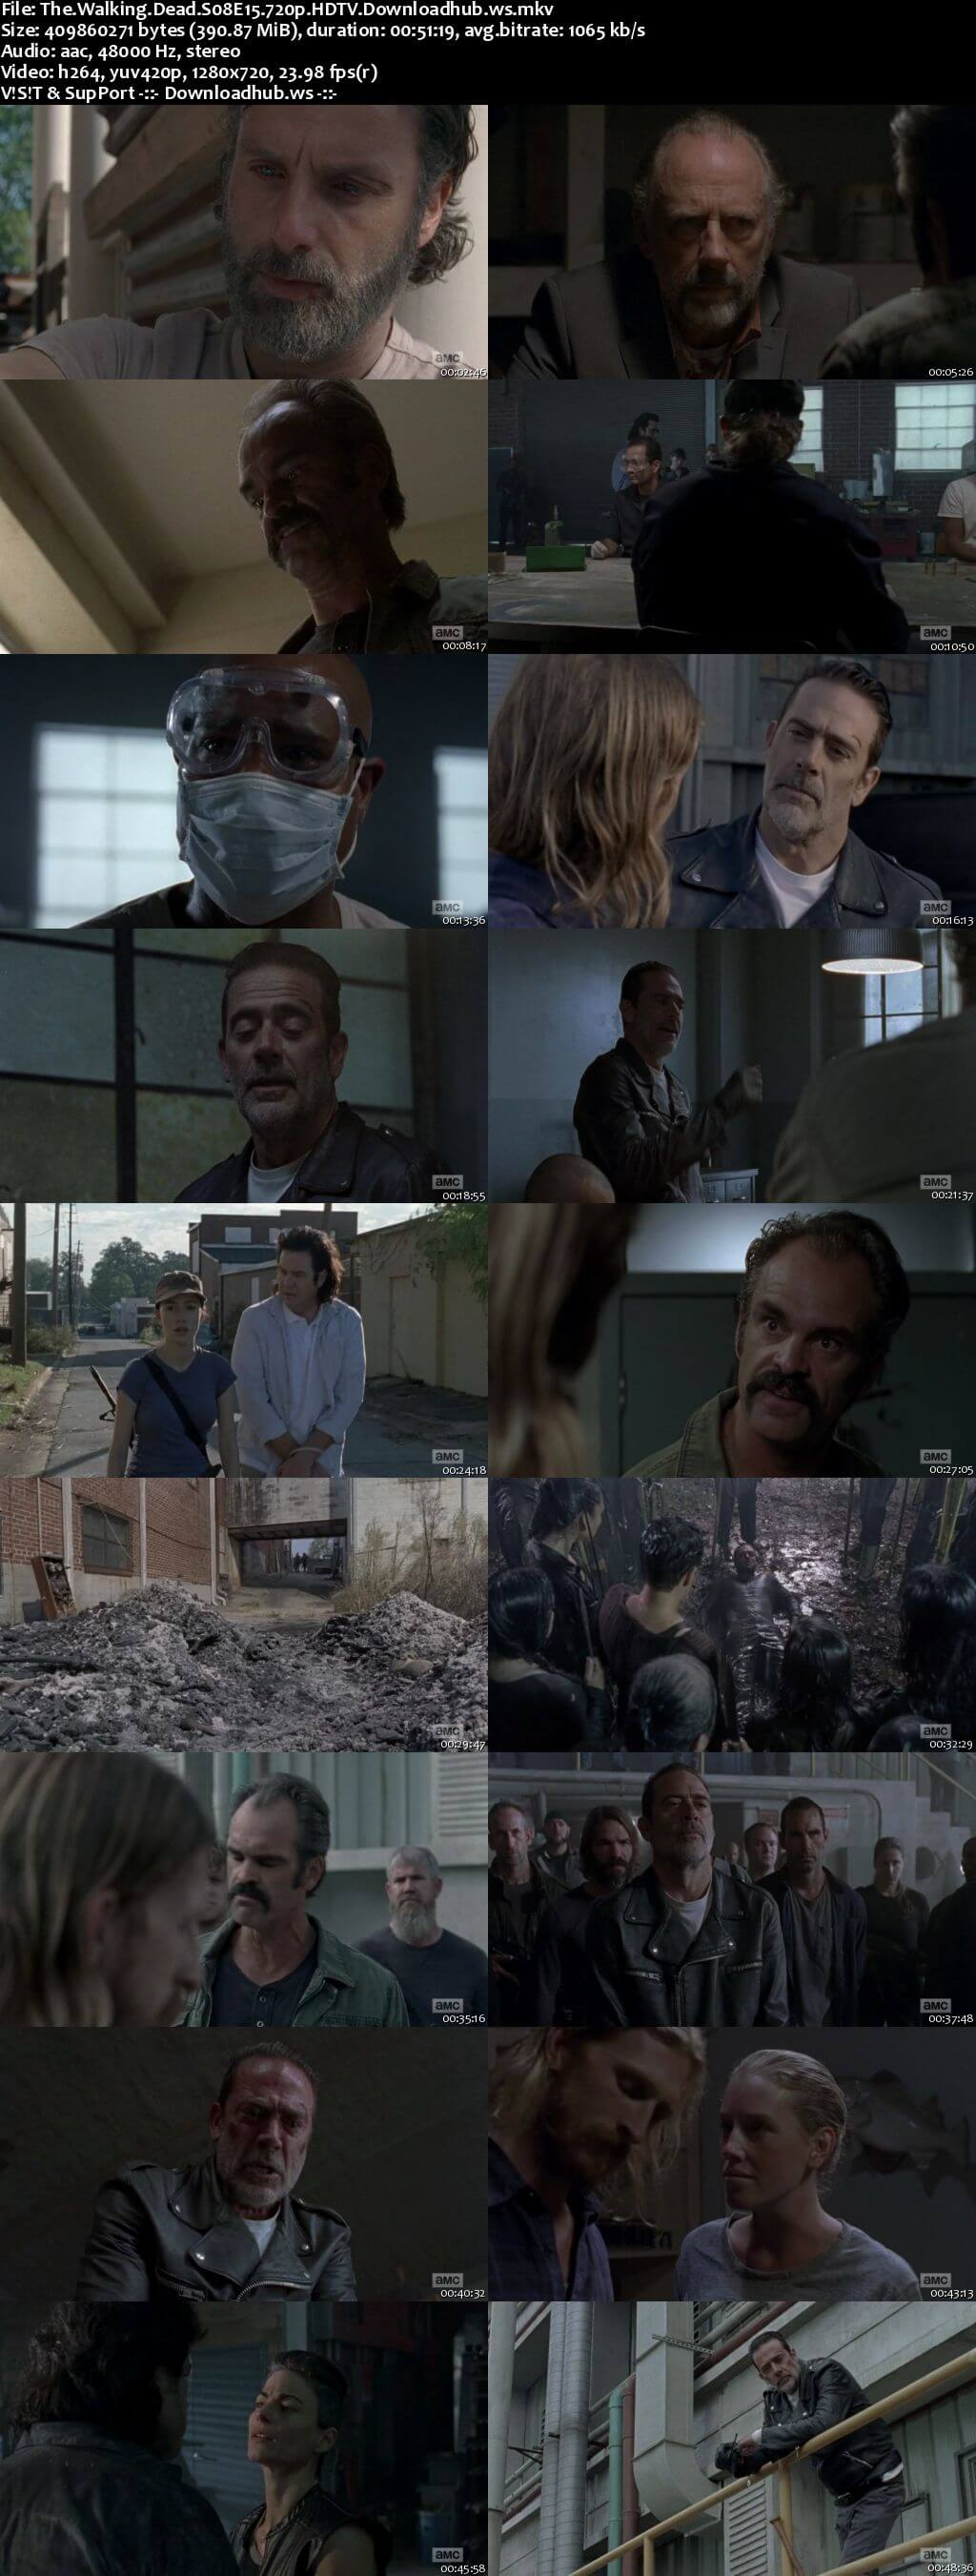 The Walking Dead S08E15 390MB HDTV 720p x264